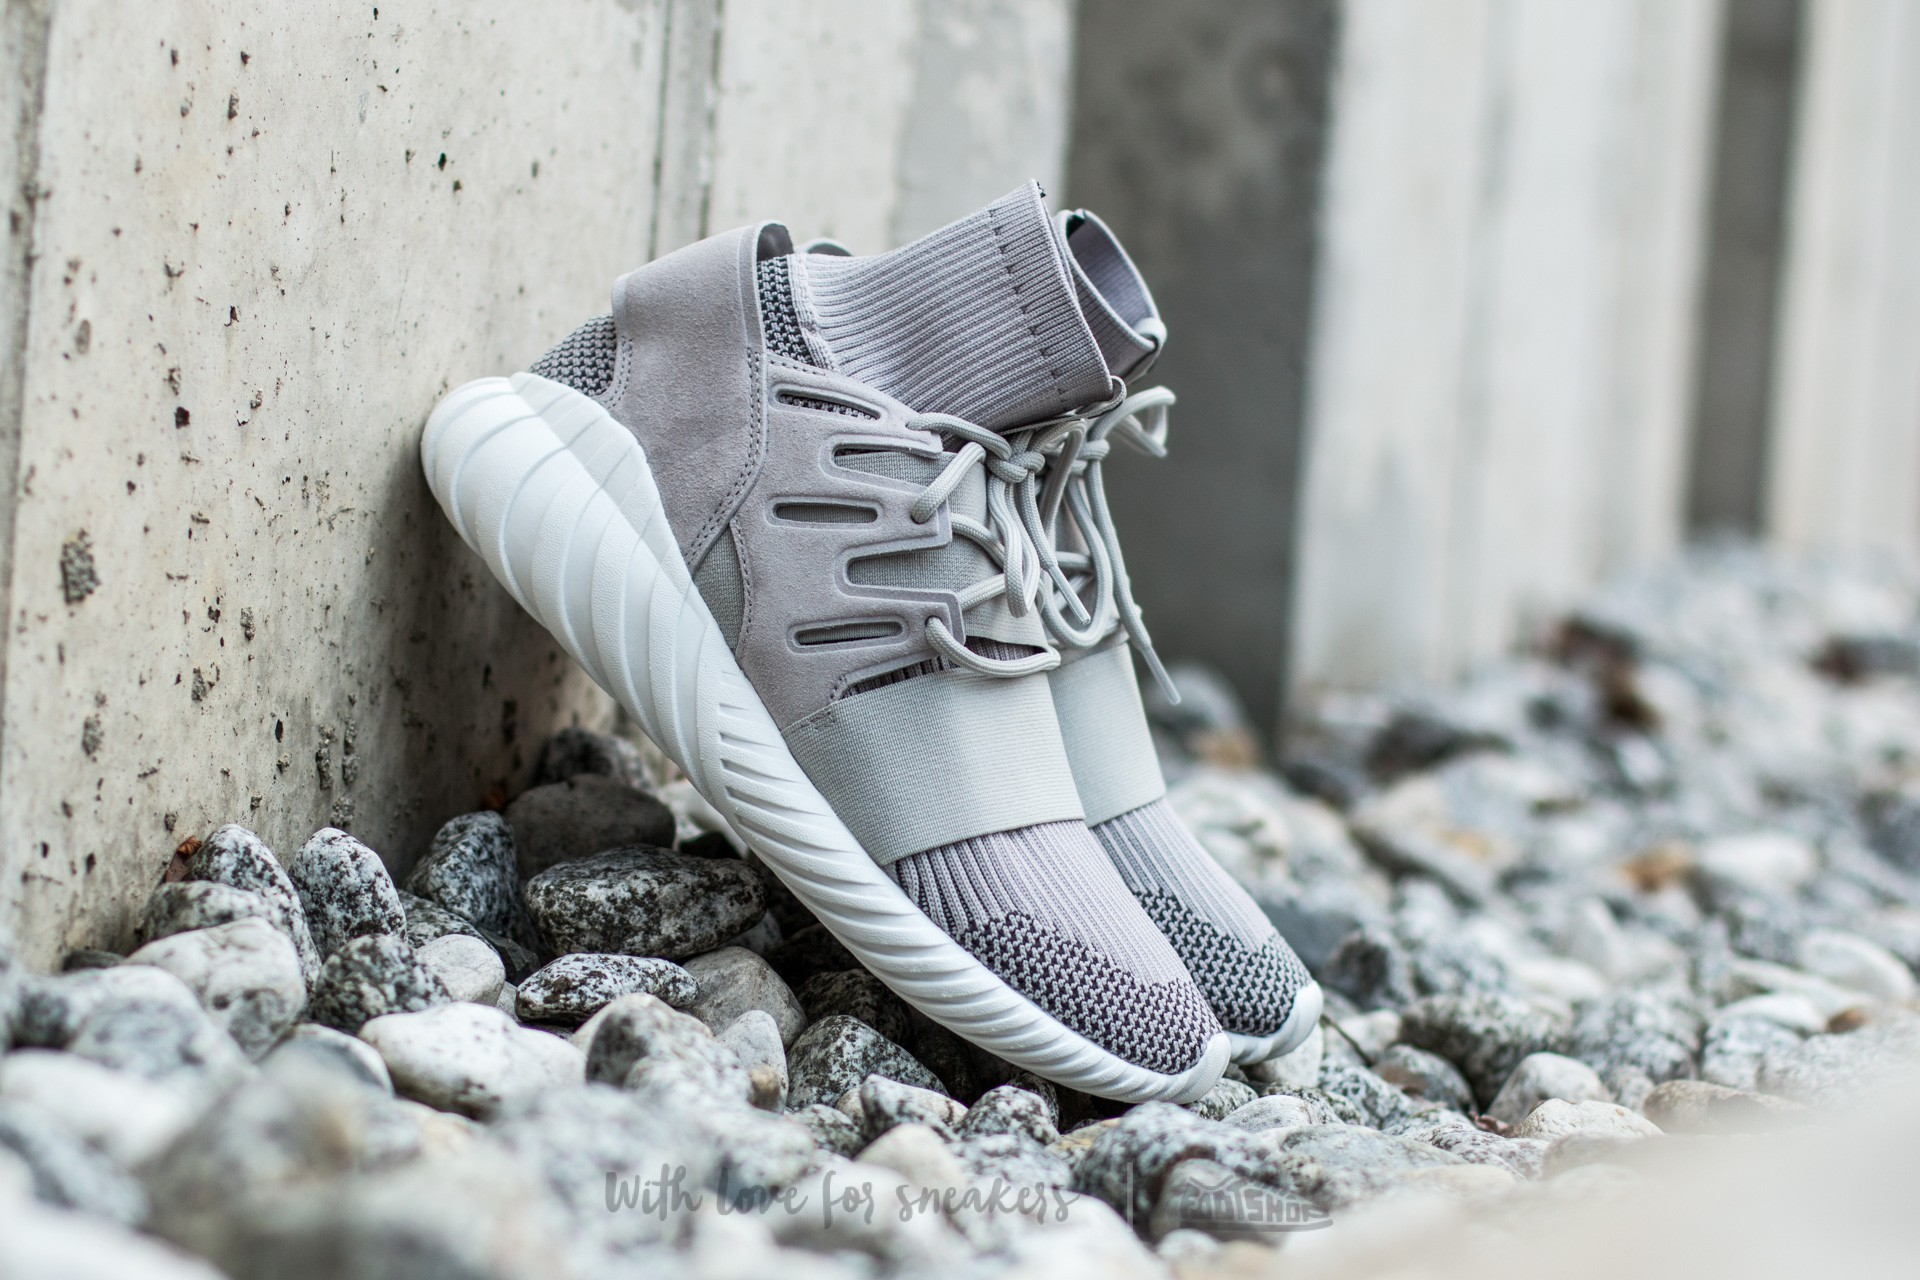 Adidas Tubular Primeknit Releasing in Fall 2015